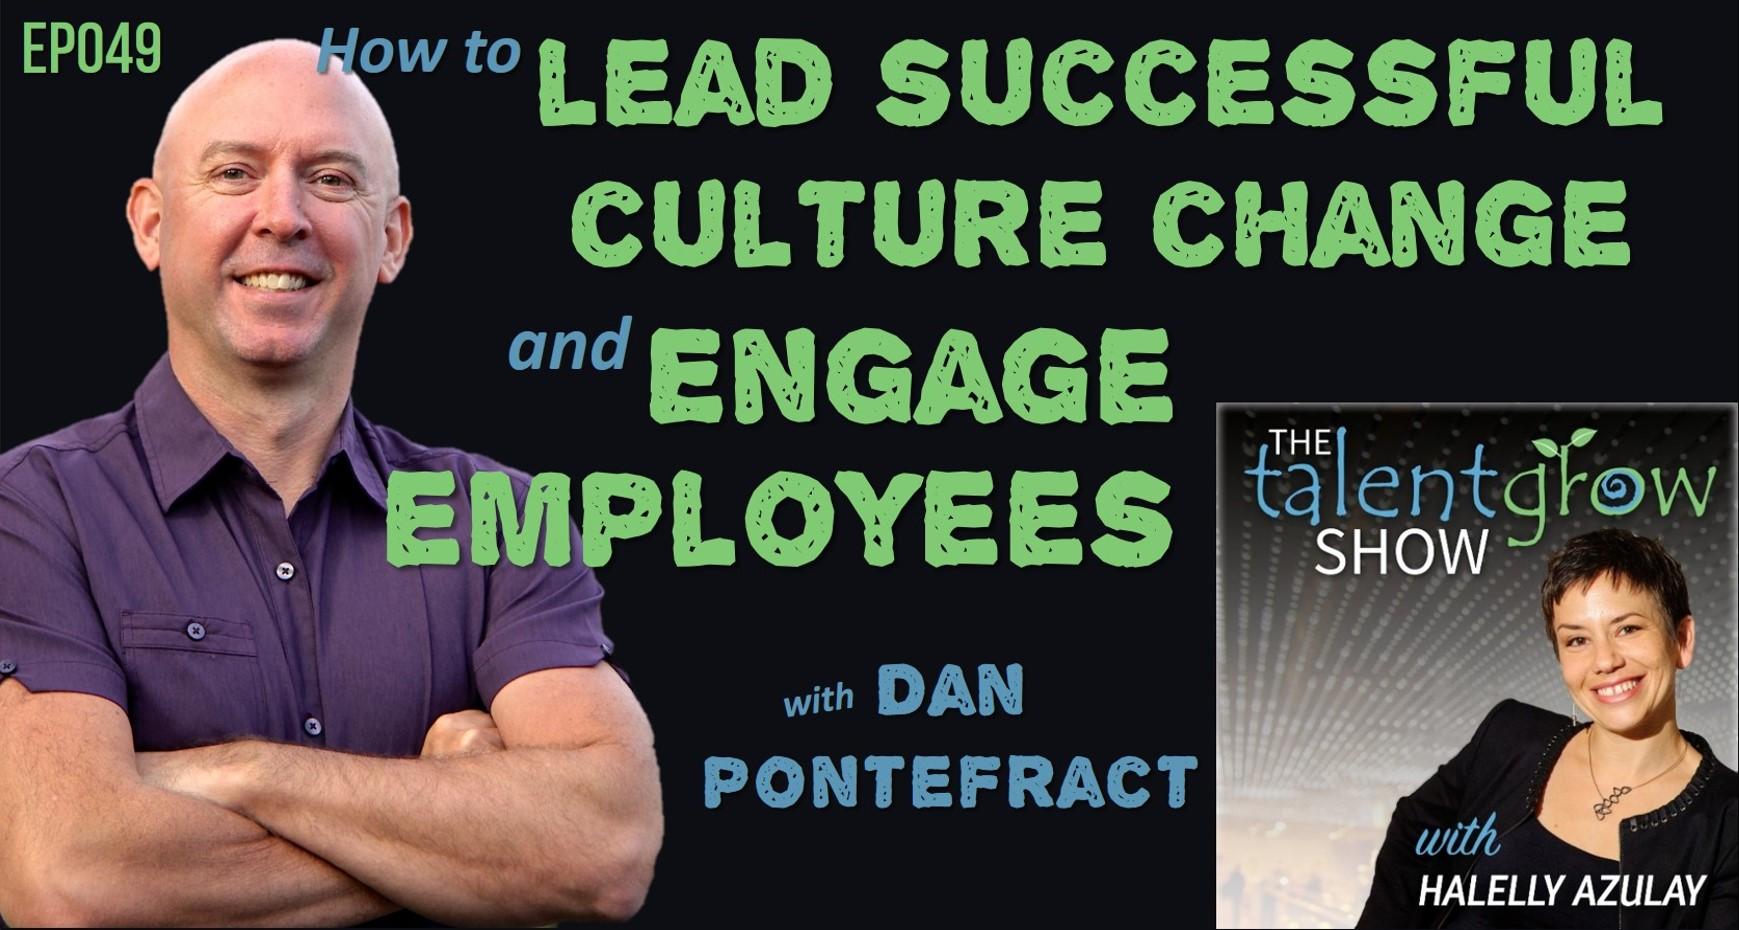 Dan Pontefract on the TalentGrow Show with Halelly Azulay ep049How to lead successful culture change and engage employees